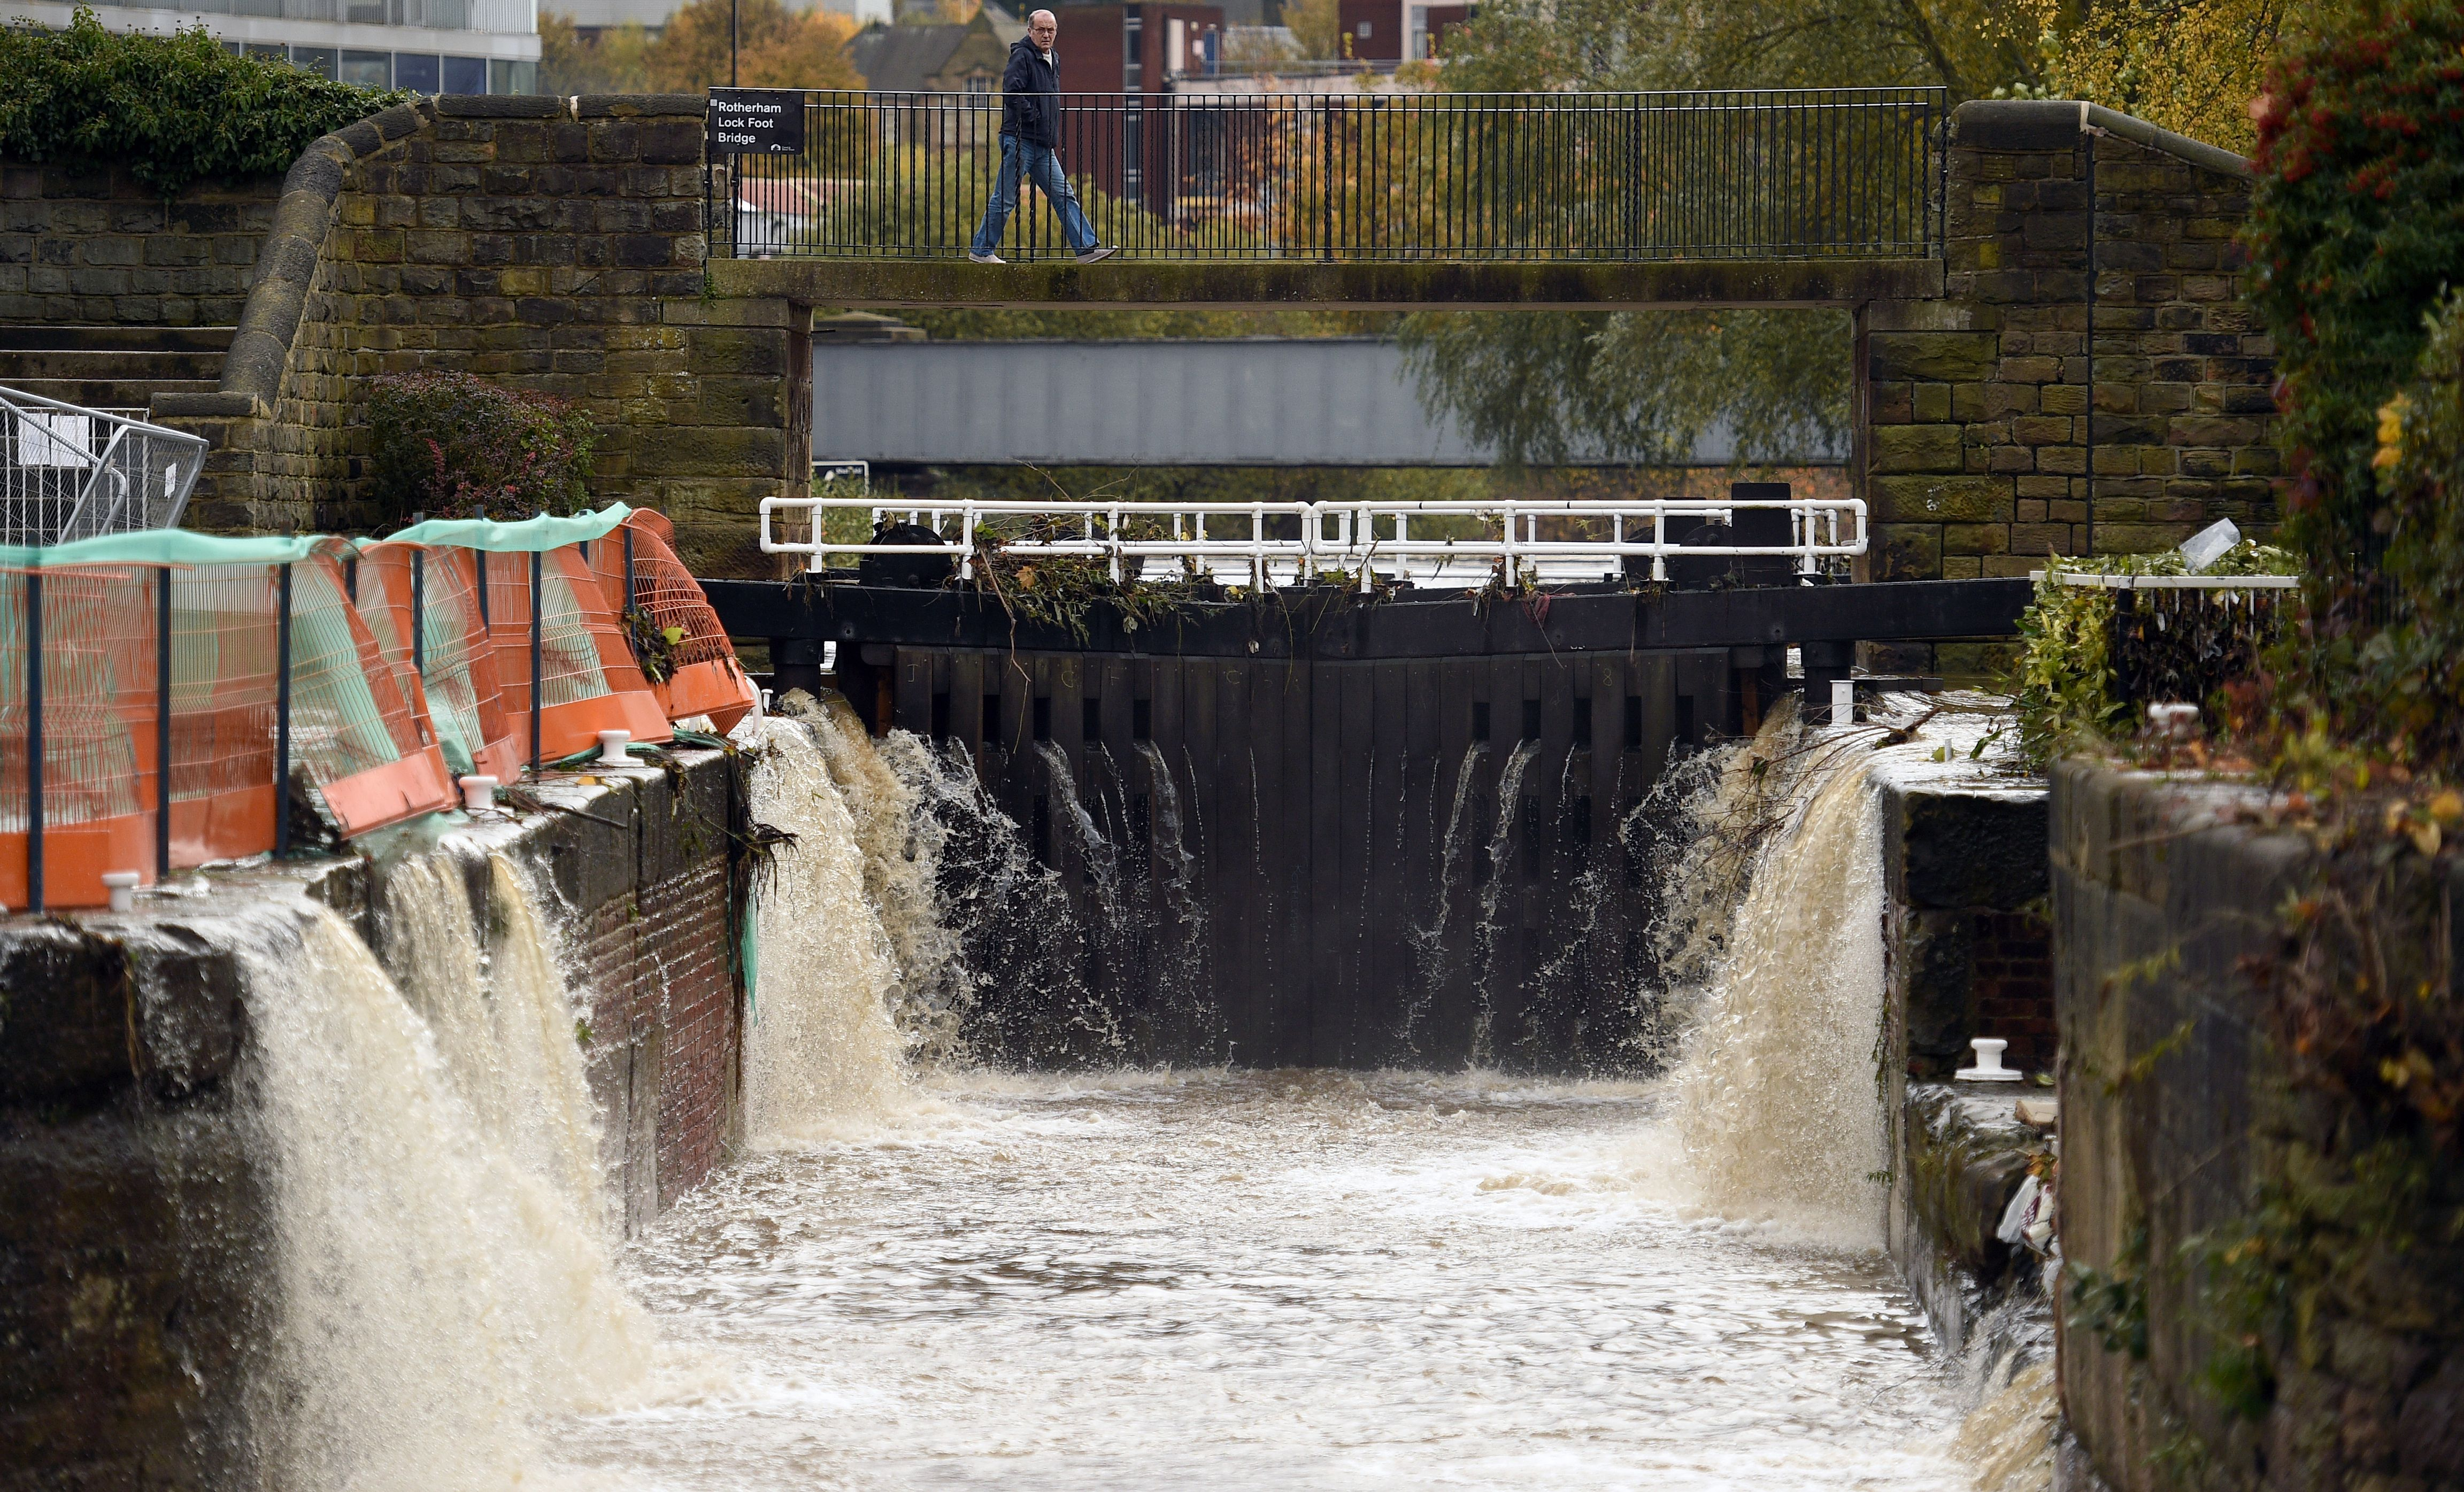 Excess surface water runs into the canal in Rotherham, northern England.